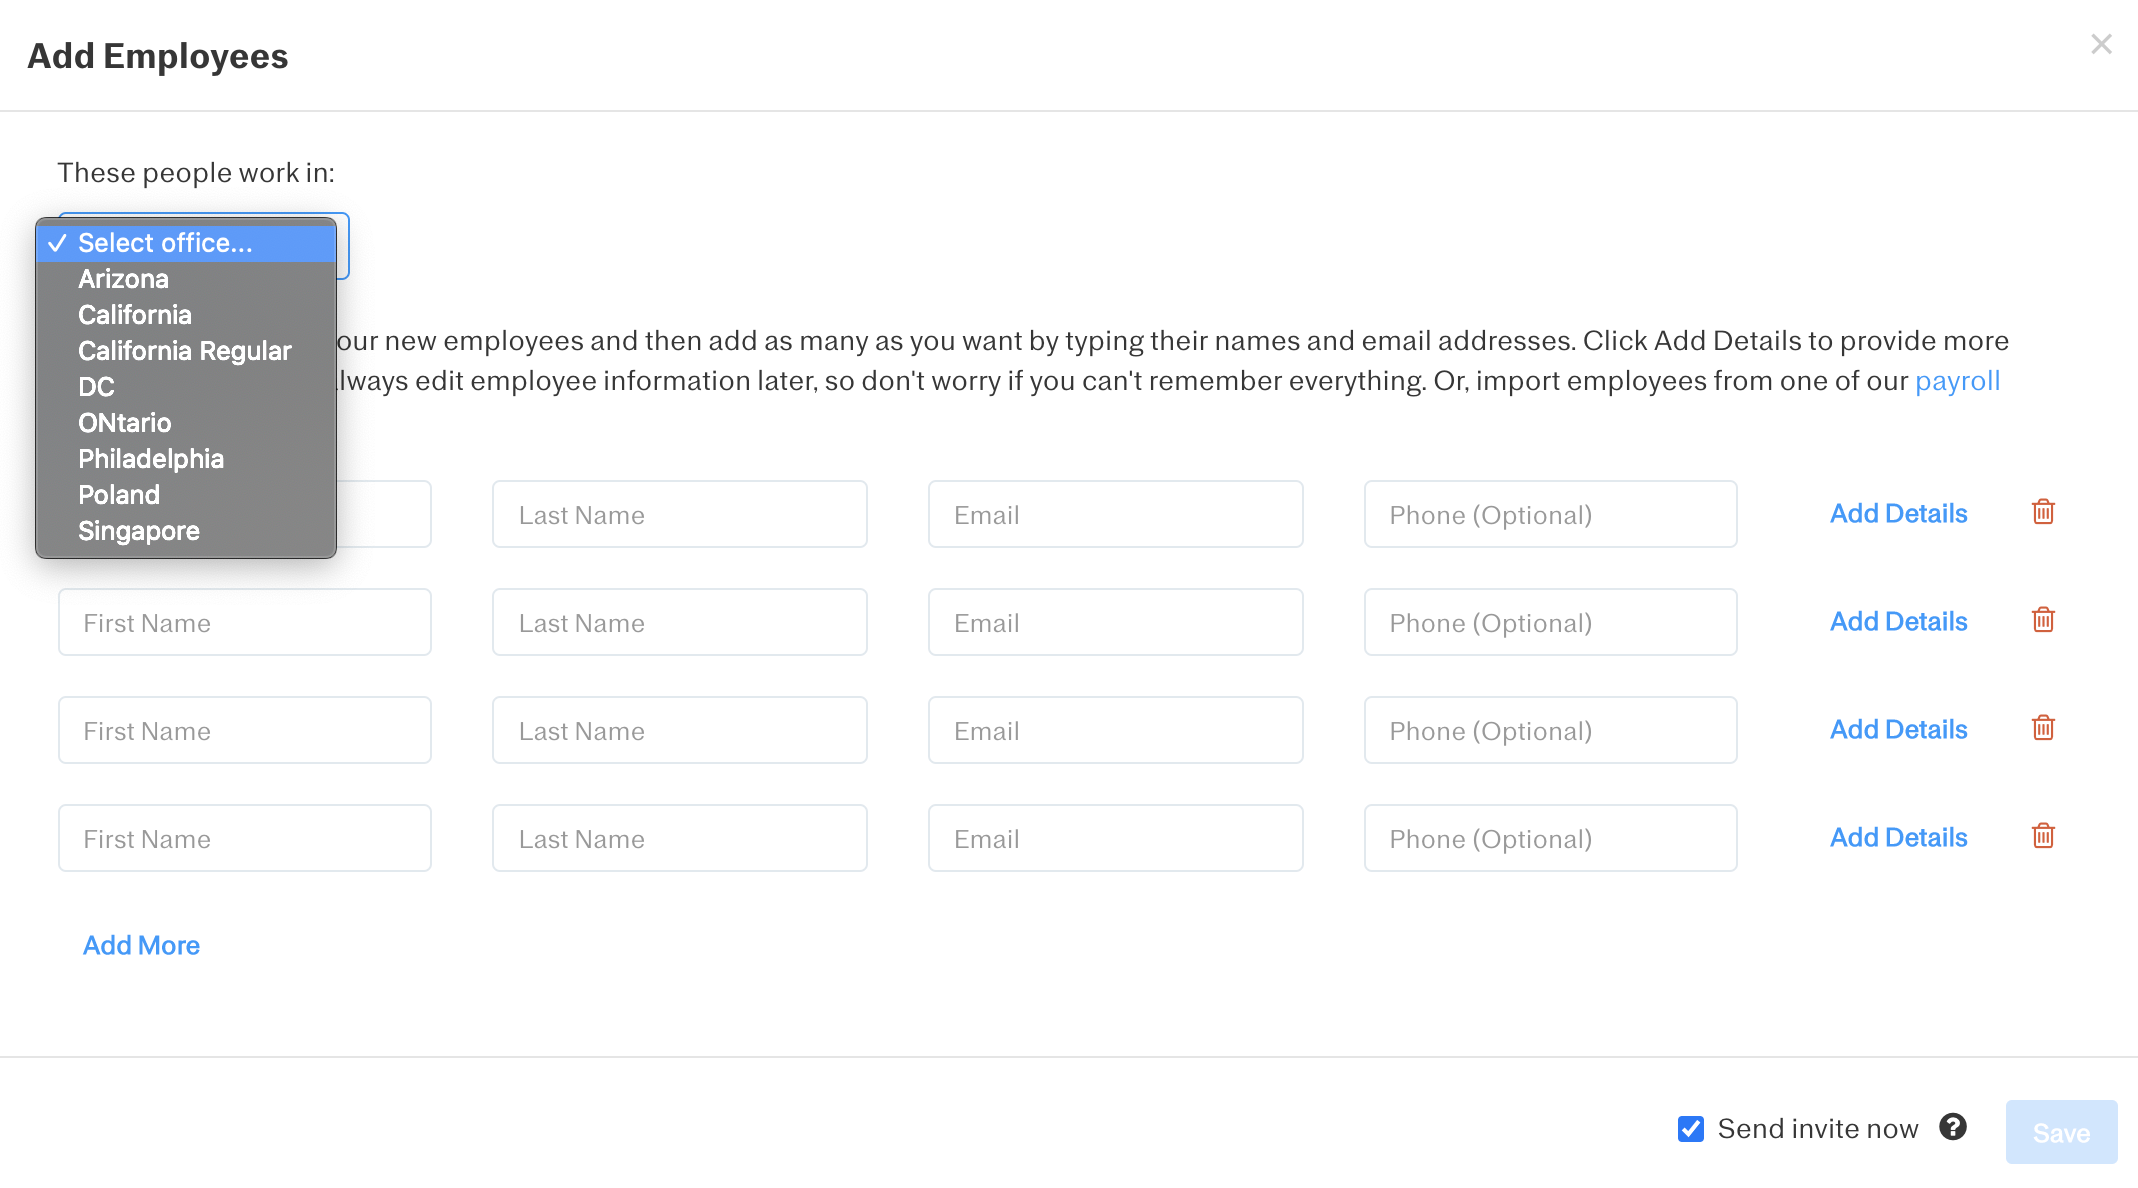 Screenshot showing how to select an office for the employees you wish to add